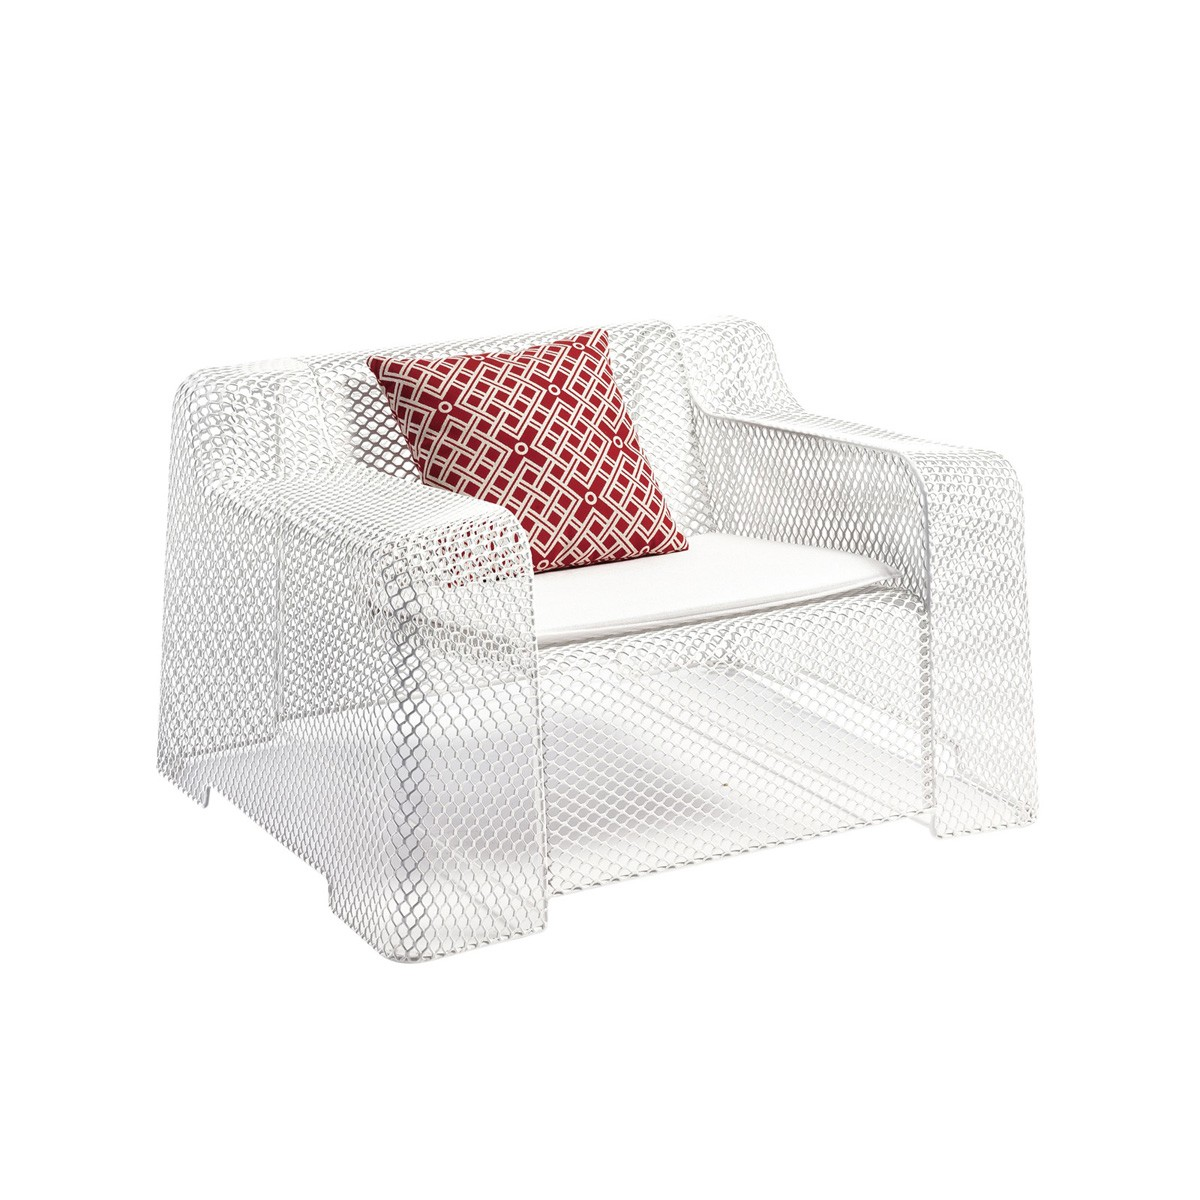 Ivy Lounge Chair 585 from Emu